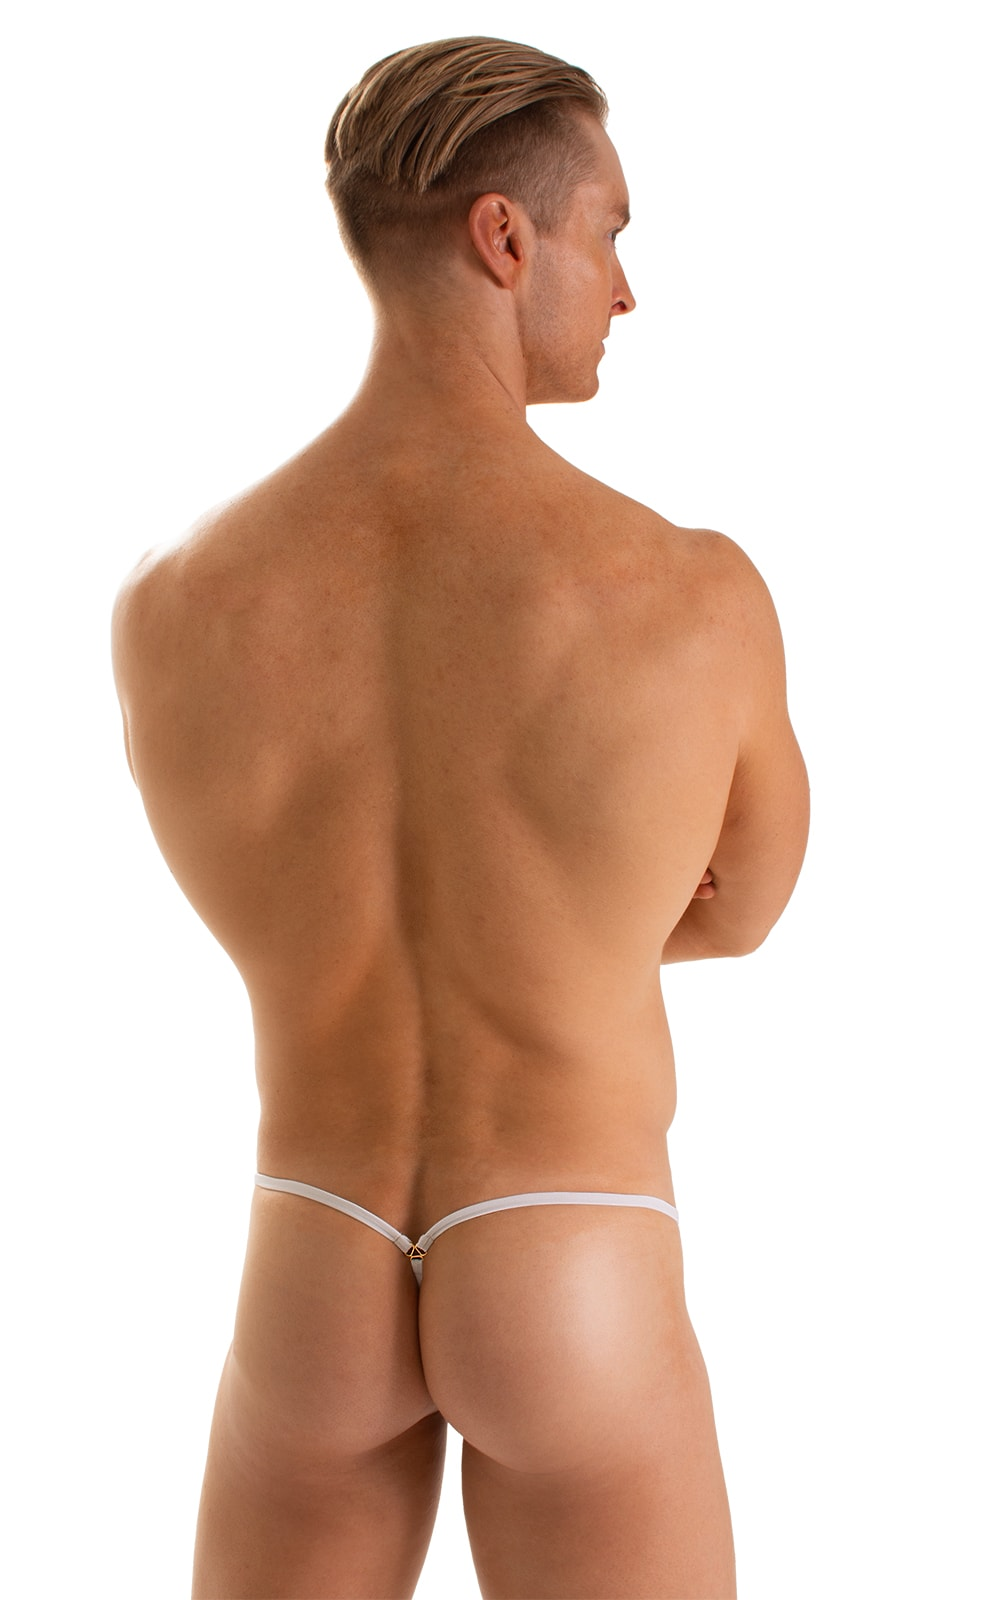 Stuffit Pouch G String Swimsuit in Super ThinSKINZ White 2